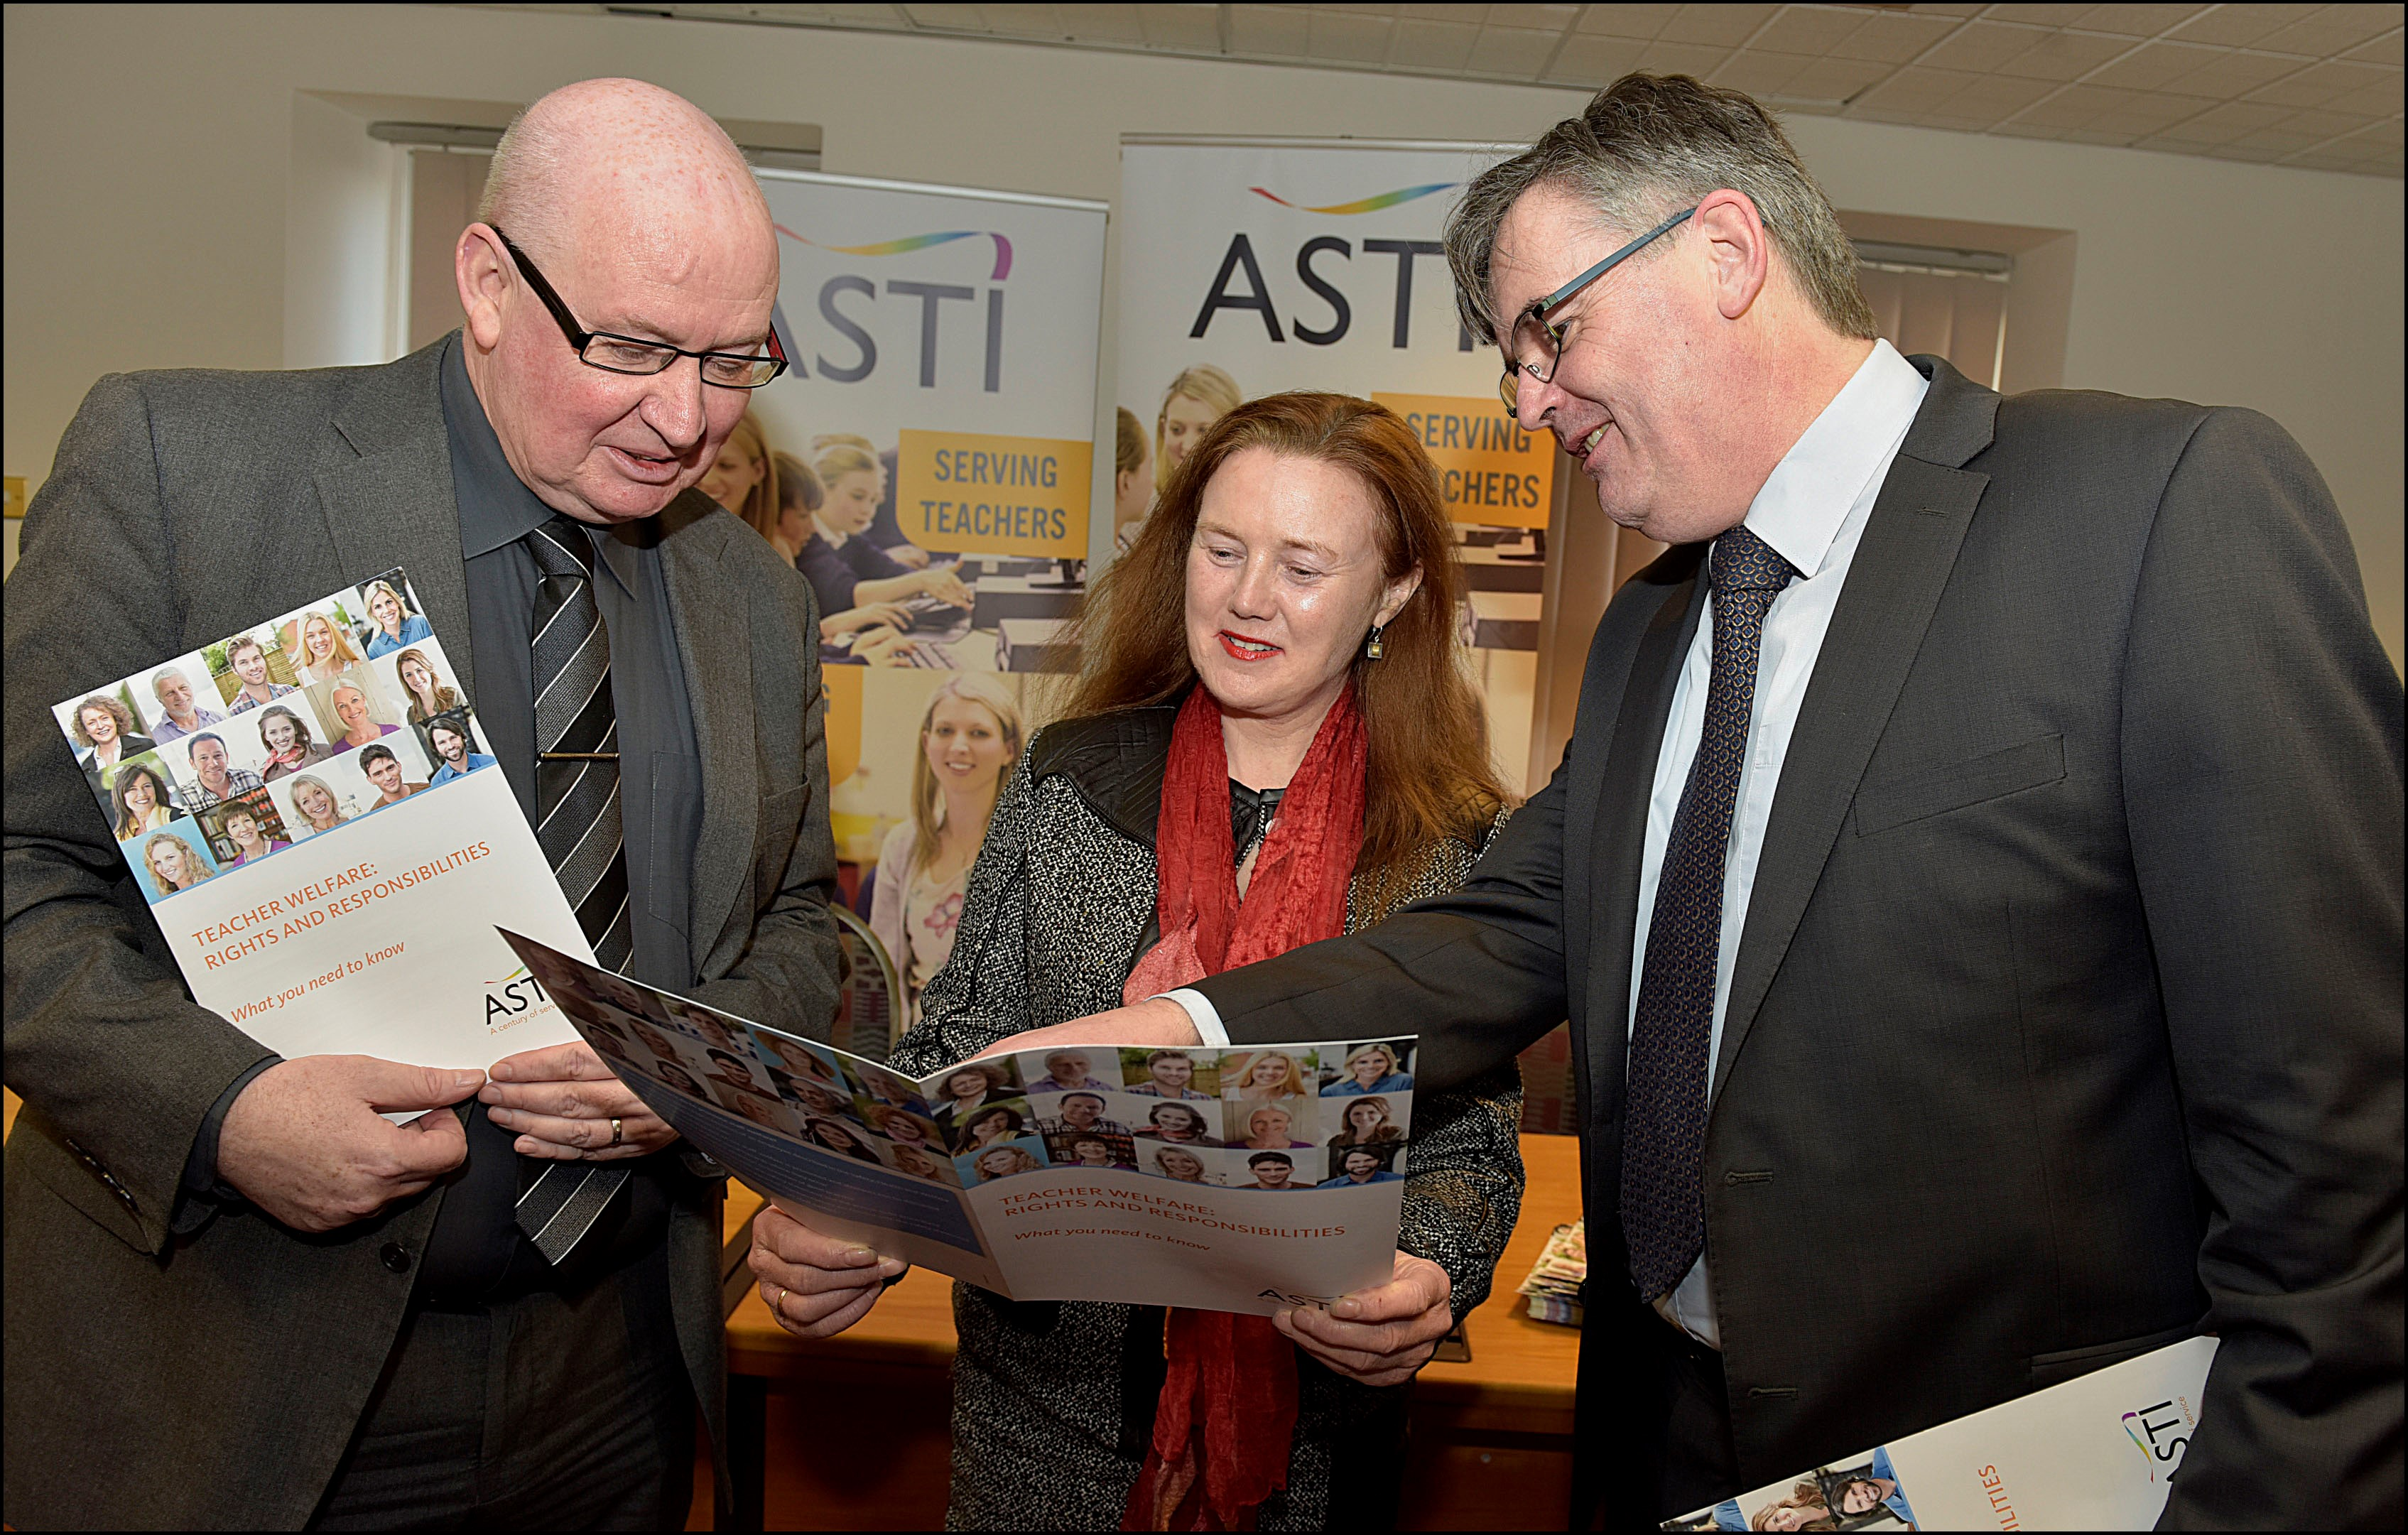 Pictured at the launch of the ASTI booklet: Ed Byrne, ASTI President, Annette Dolan, TUI and John Irwin, ACCS.